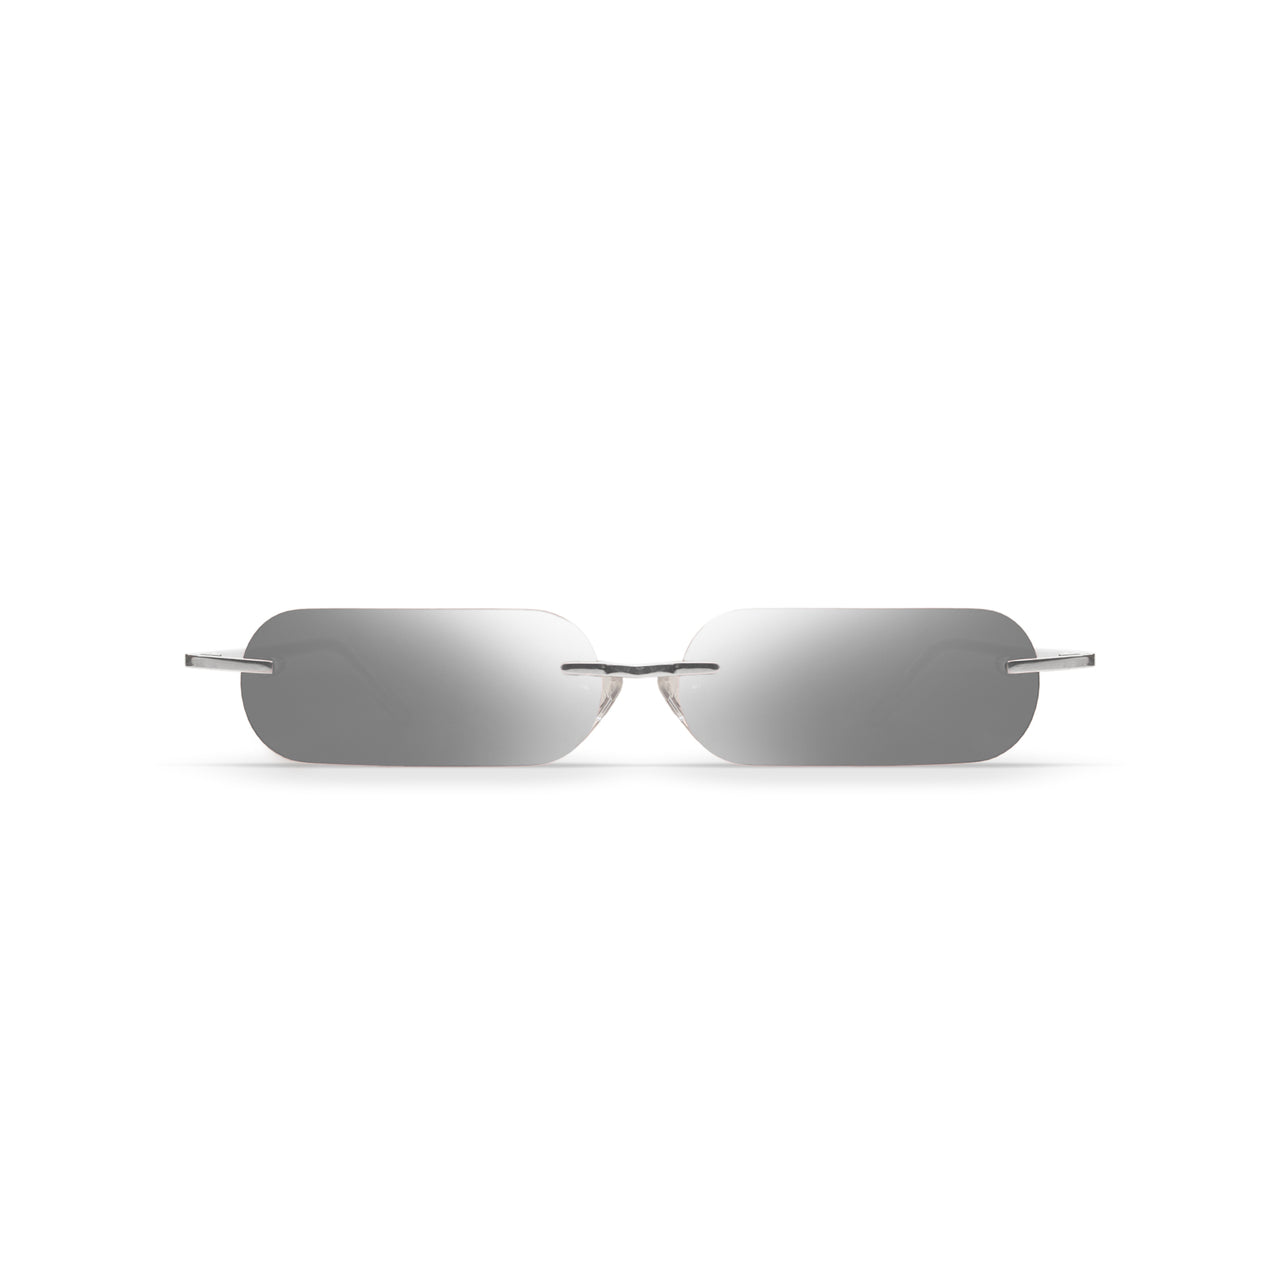 Metal. Polished Silver. Silver Mirror Lens. - BLYSZAK eyewear eyewear - eyewear, optical, sunglasses